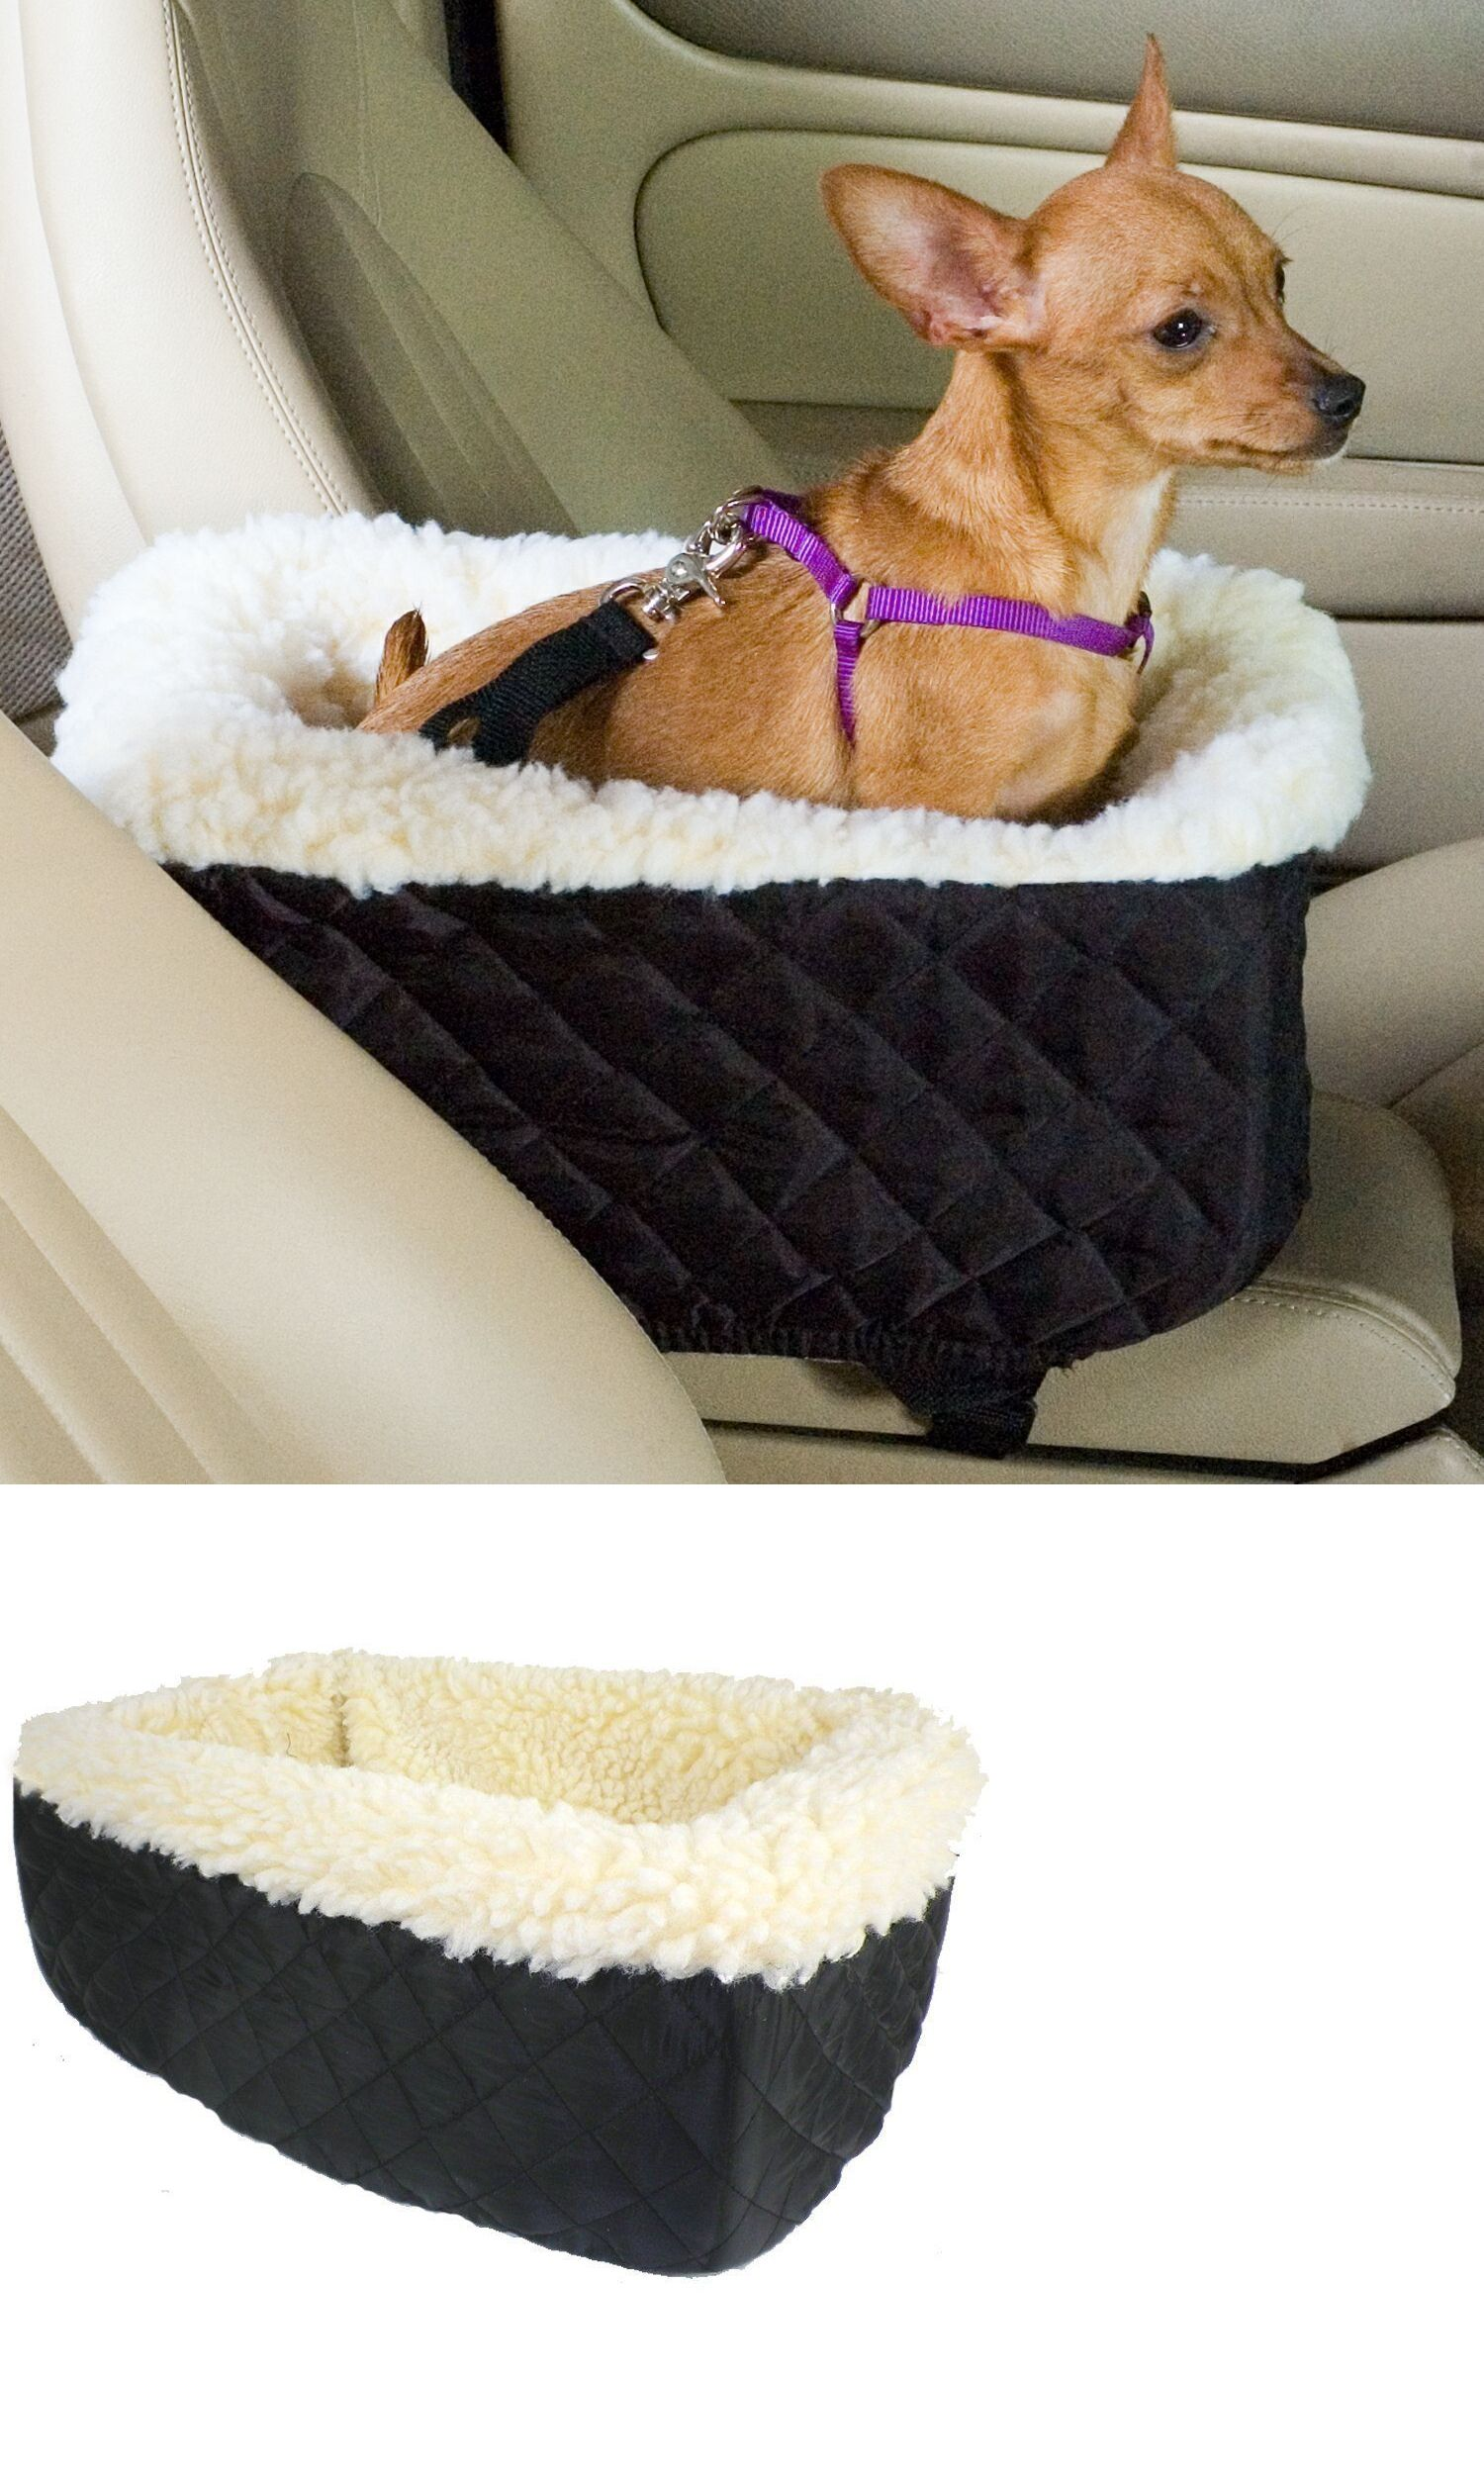 Car Seats And Barriers 46454 Snoozer Lookout Pet Dog Cat Seat Small Black Cream Sherpa Booster Bed BUY IT NOW ONLY 25 On EBay